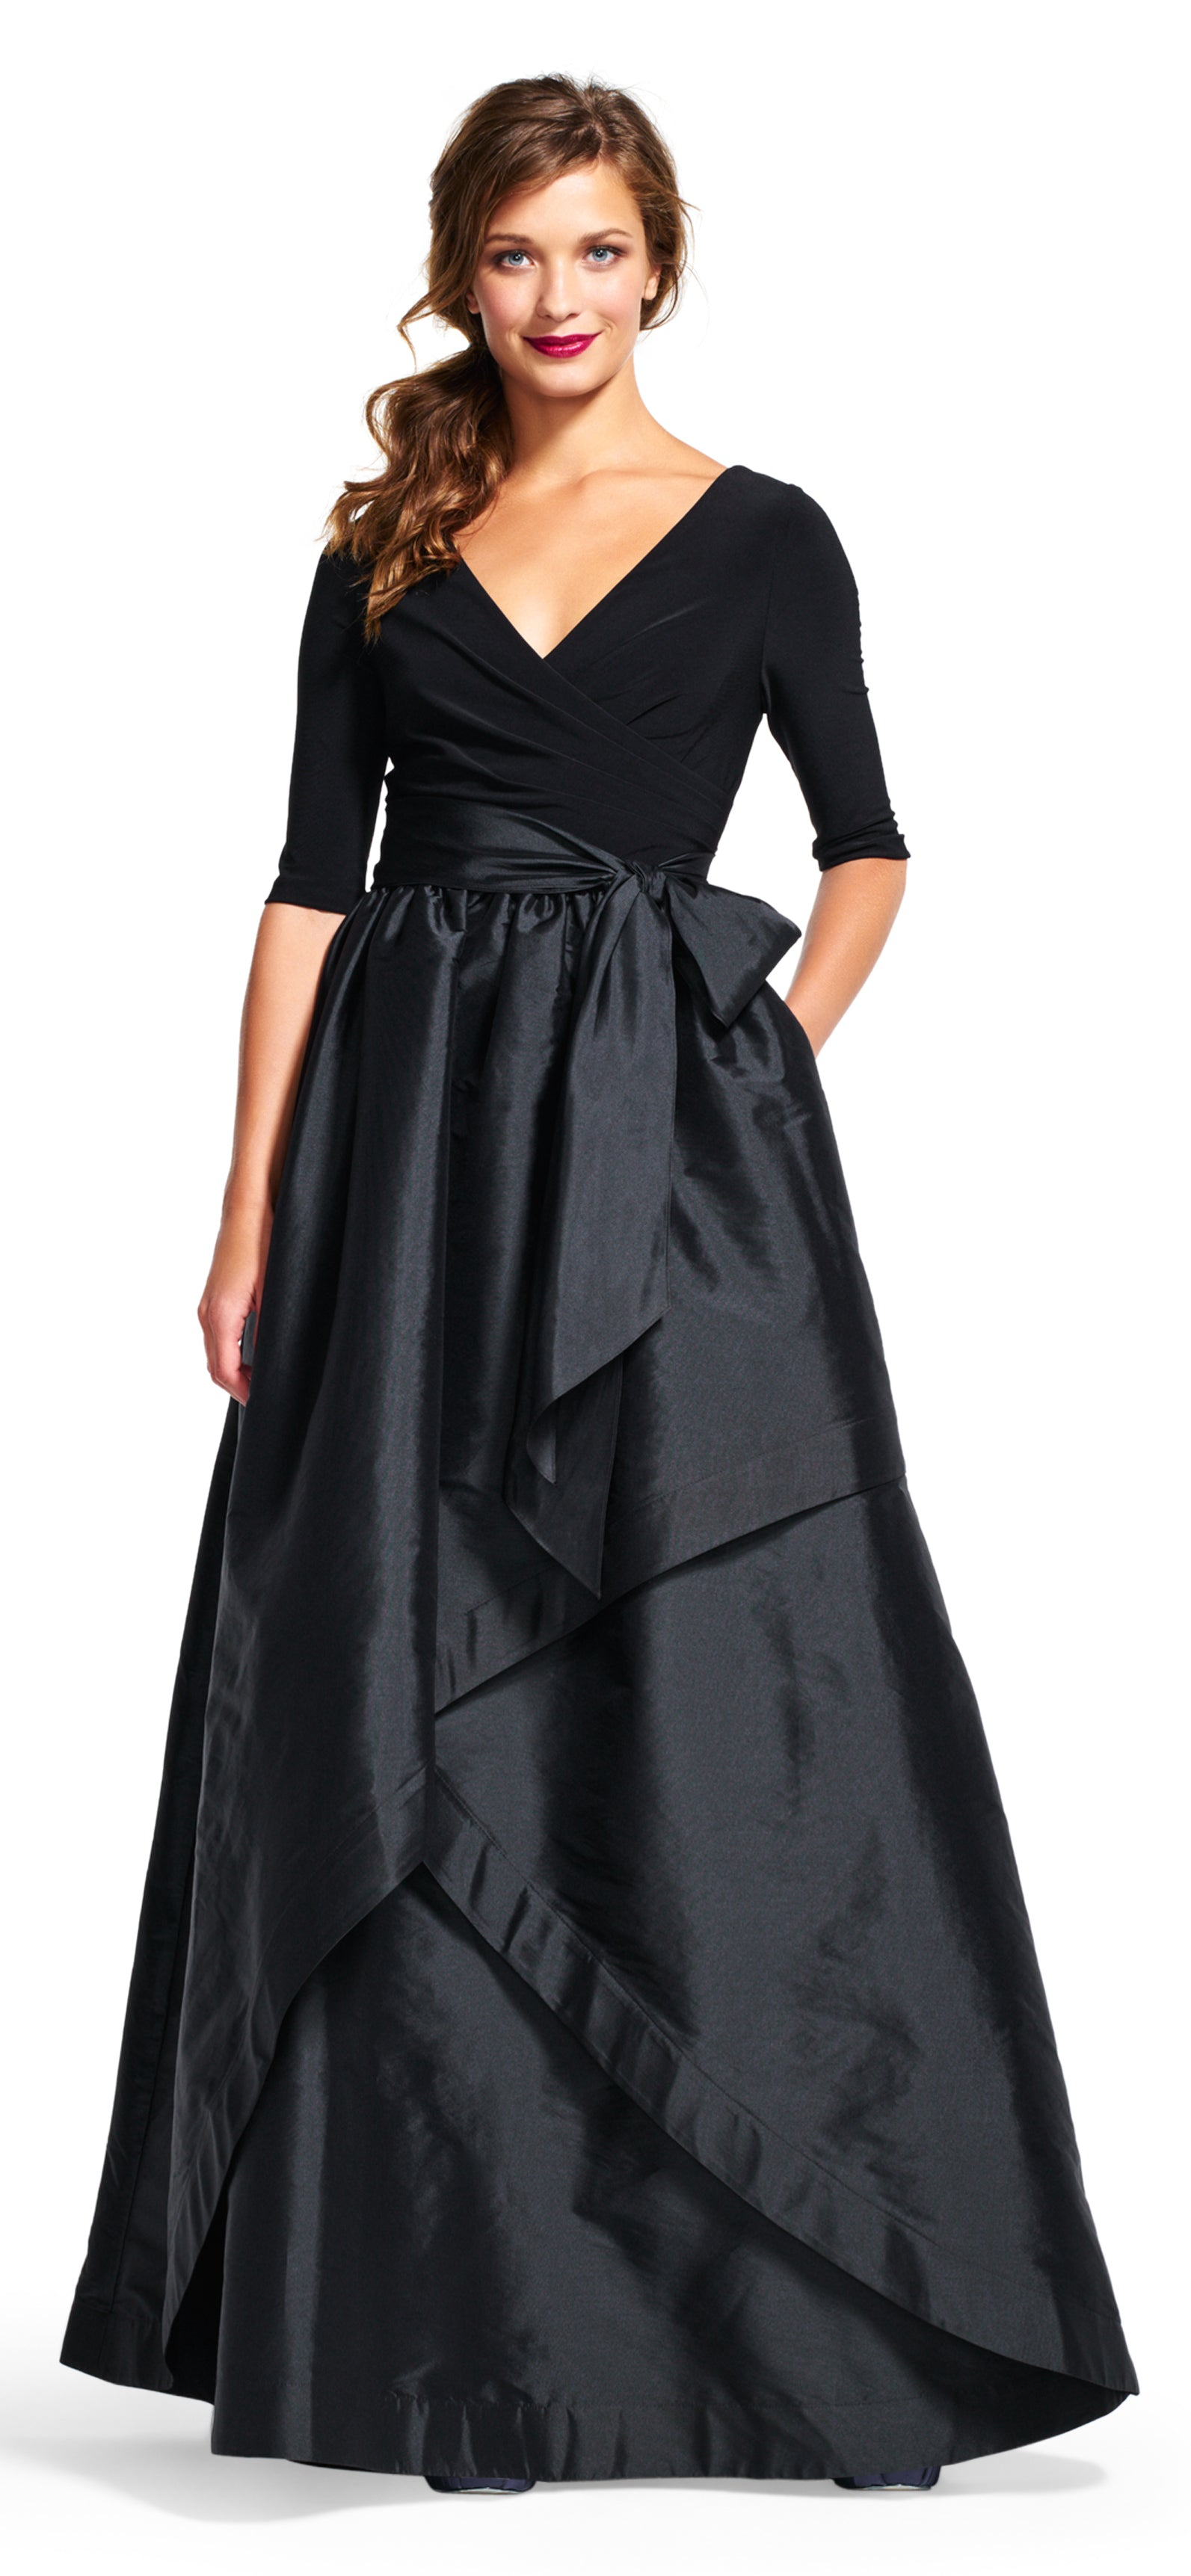 FOR SALE Black Maxi Three Quarter Sleeves V-Neck Dress by Adrianna Papell, Size 8